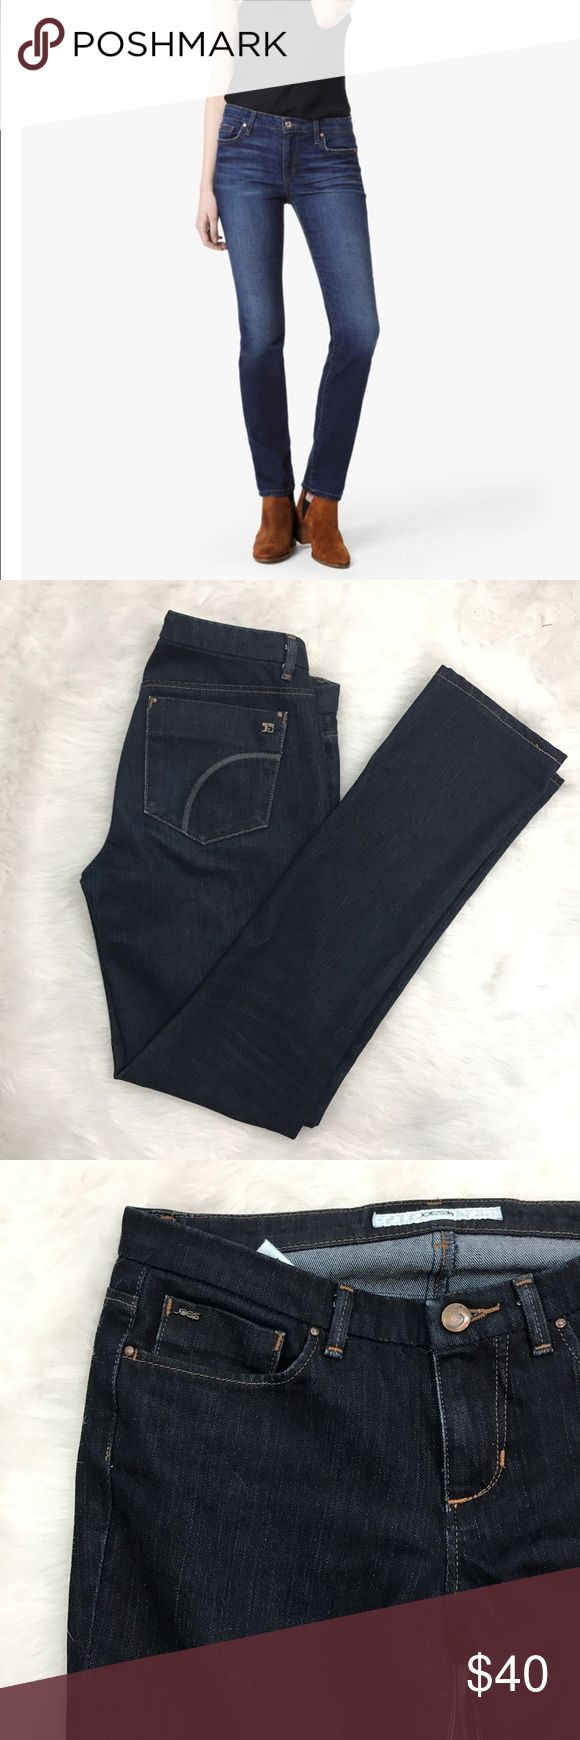 Joes jeans Cigarette jeans Ike new condition. Super dark wash. Size 26. art of Joe's Flawless Collection, The Cigarette in Lyla is a super soft, comfort stretch denim in a dark wash. This slim, straight leg jean has a classic mid rise and features a gravity-defying fabric that holds you in and smooths you out while allowing for maximum movement. No trades. Joe's Jeans Jeans Straight Leg